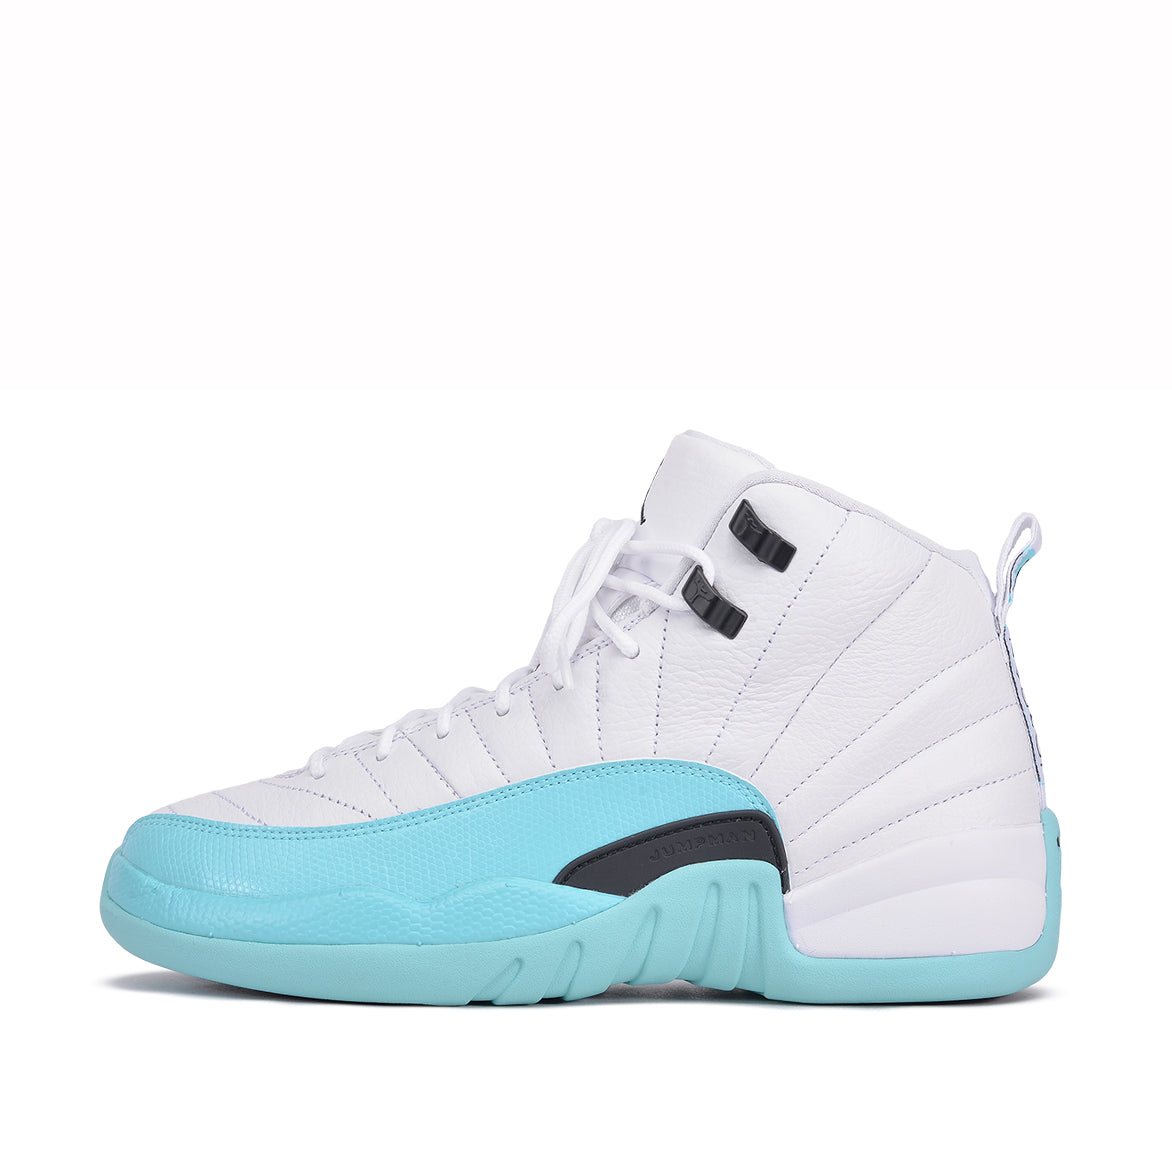 0d5293eaeaa6 AIR JORDAN RETRO 12 (GG)